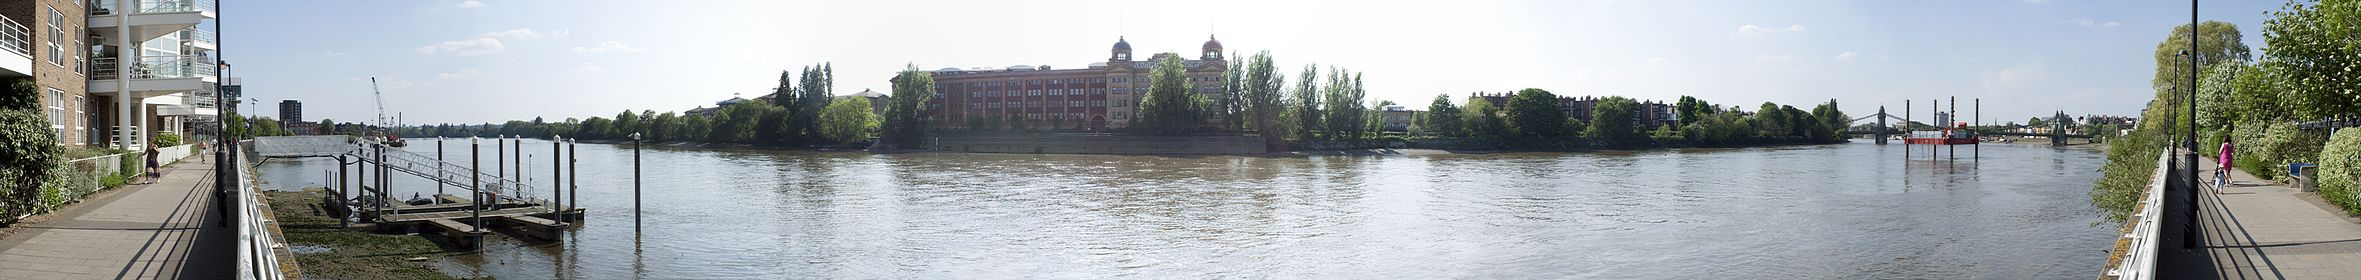 A panoramic view looking of the Thames at Hammersmith, opposite the Harrods Repository.